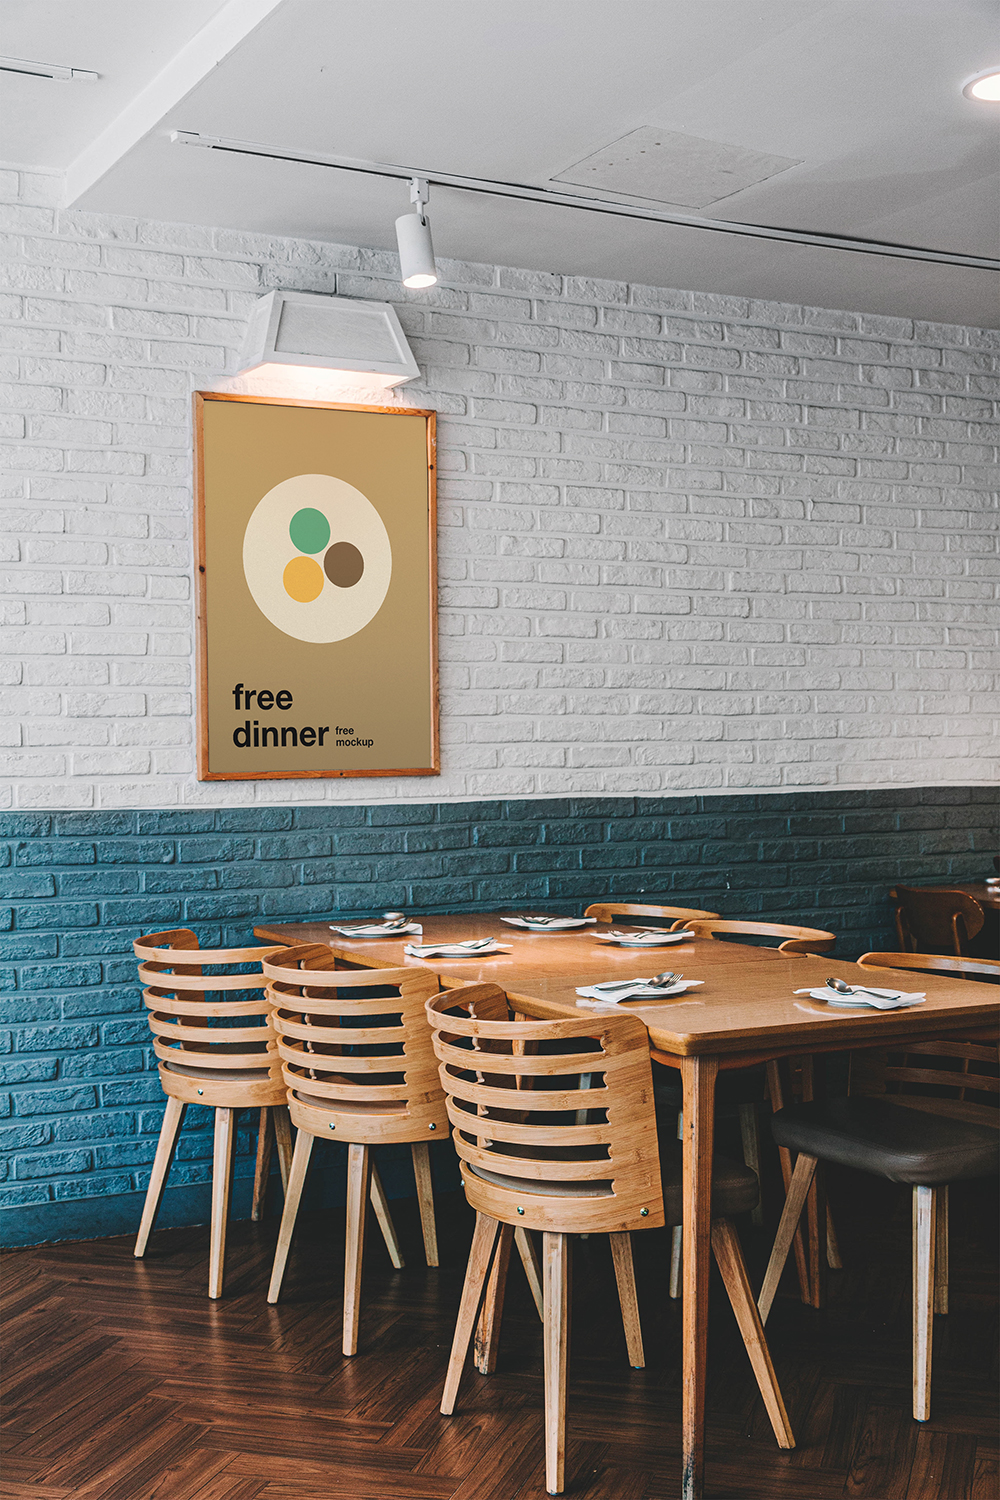 Free Poster in Cafe Mockup